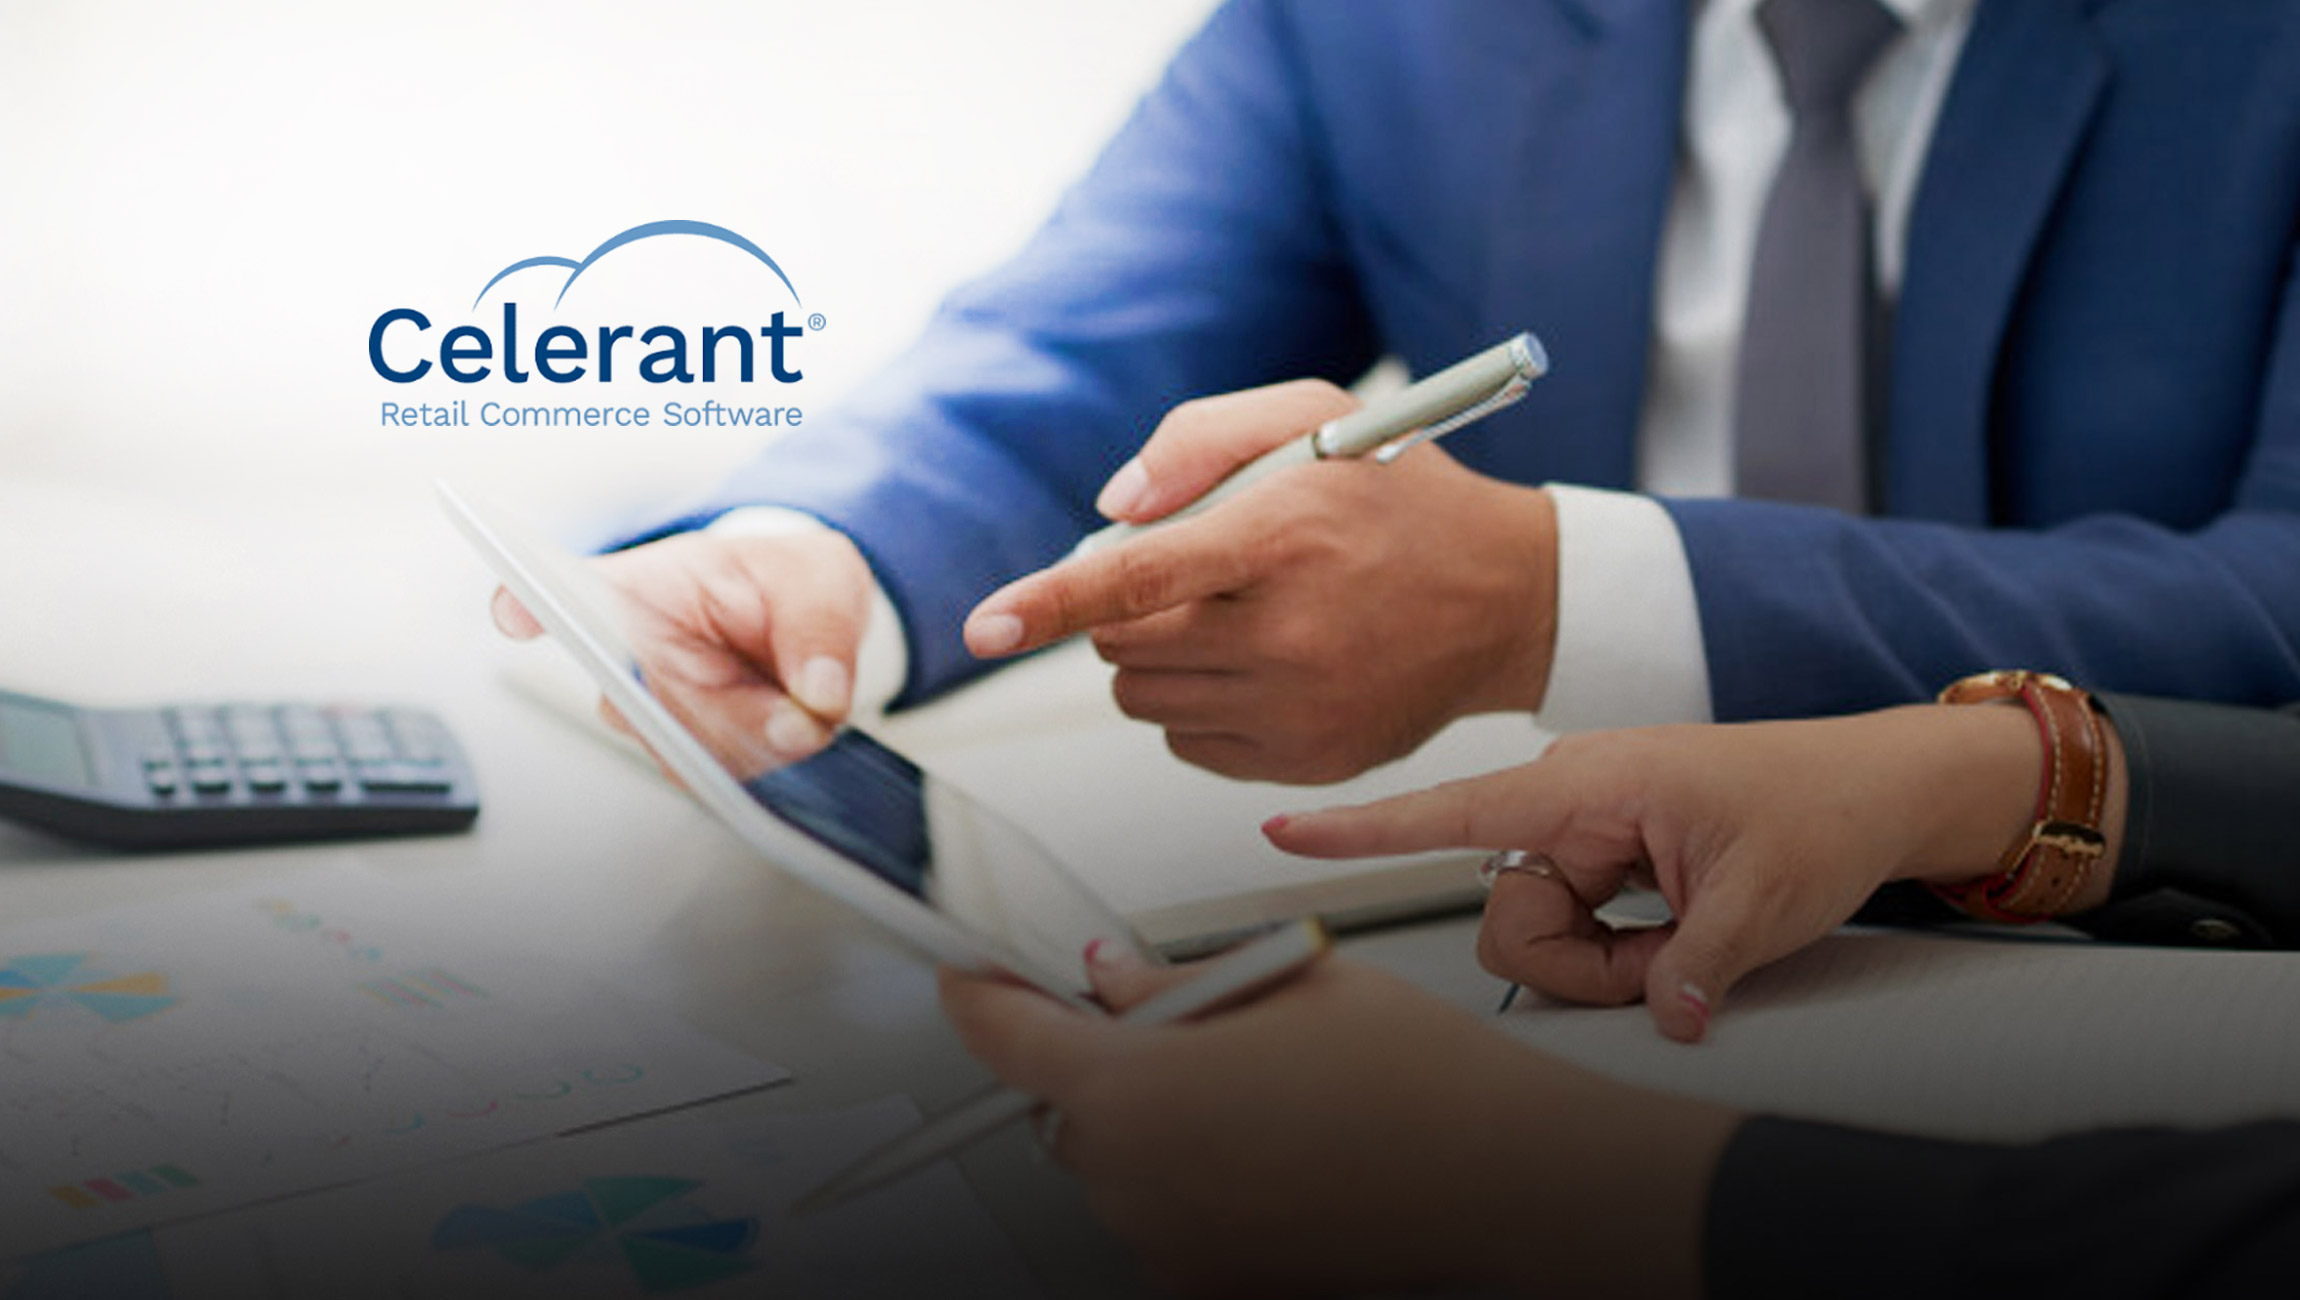 Celerant-Technology®-Celebrates-Its-22nd-Anniversary-Serving-the-Retail-Industry